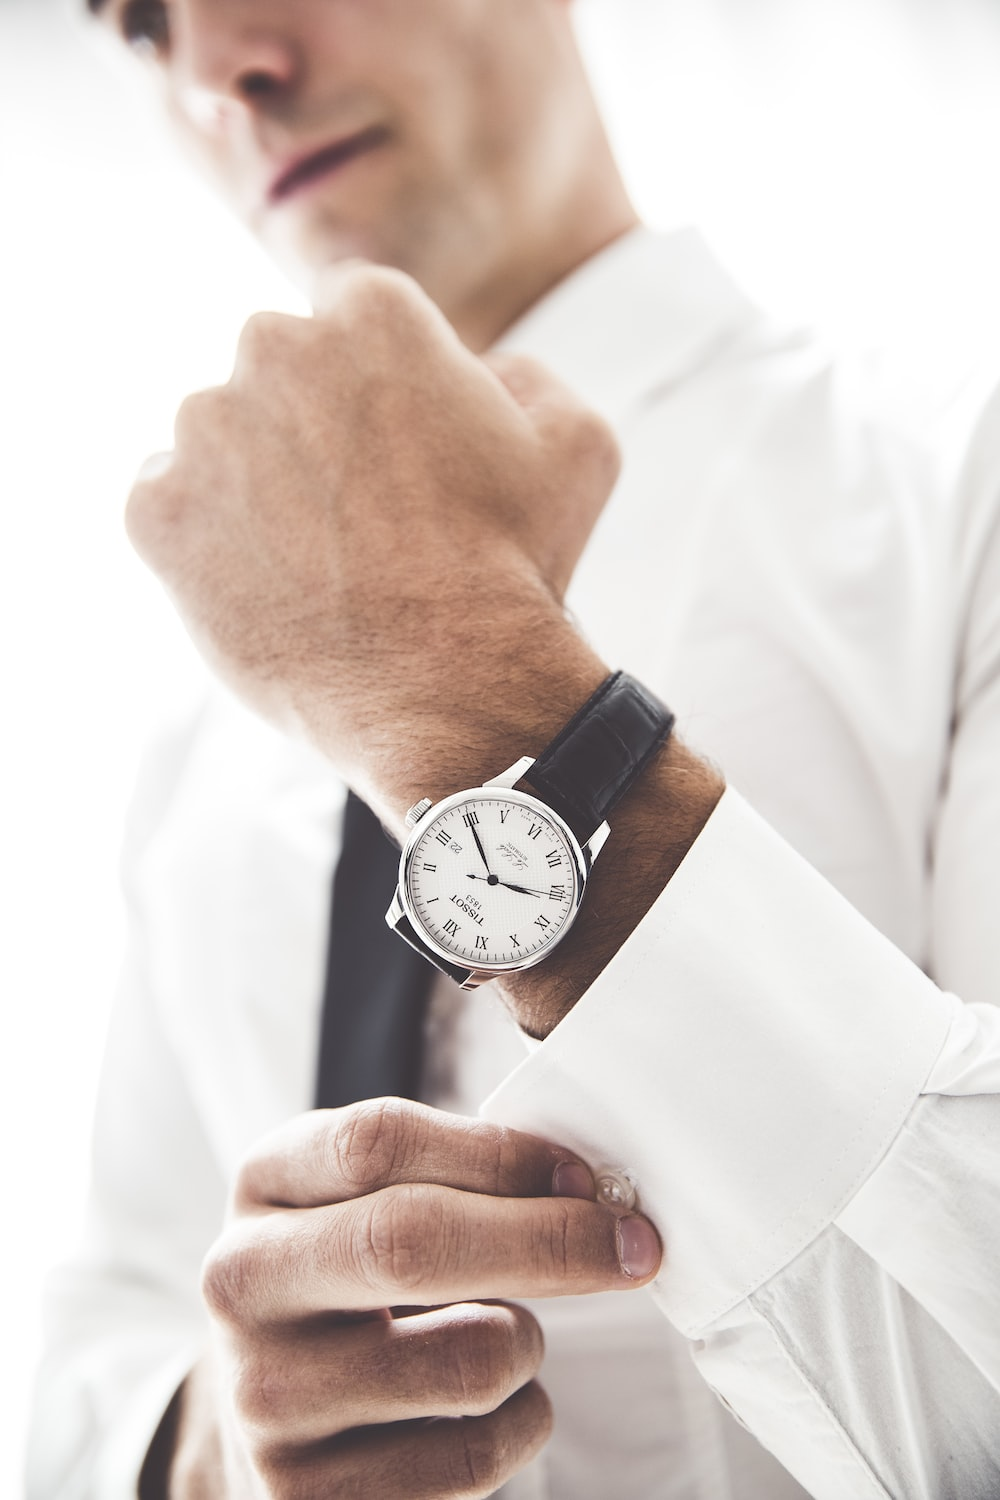 person wearing round silver-colored analog watch with black leather band